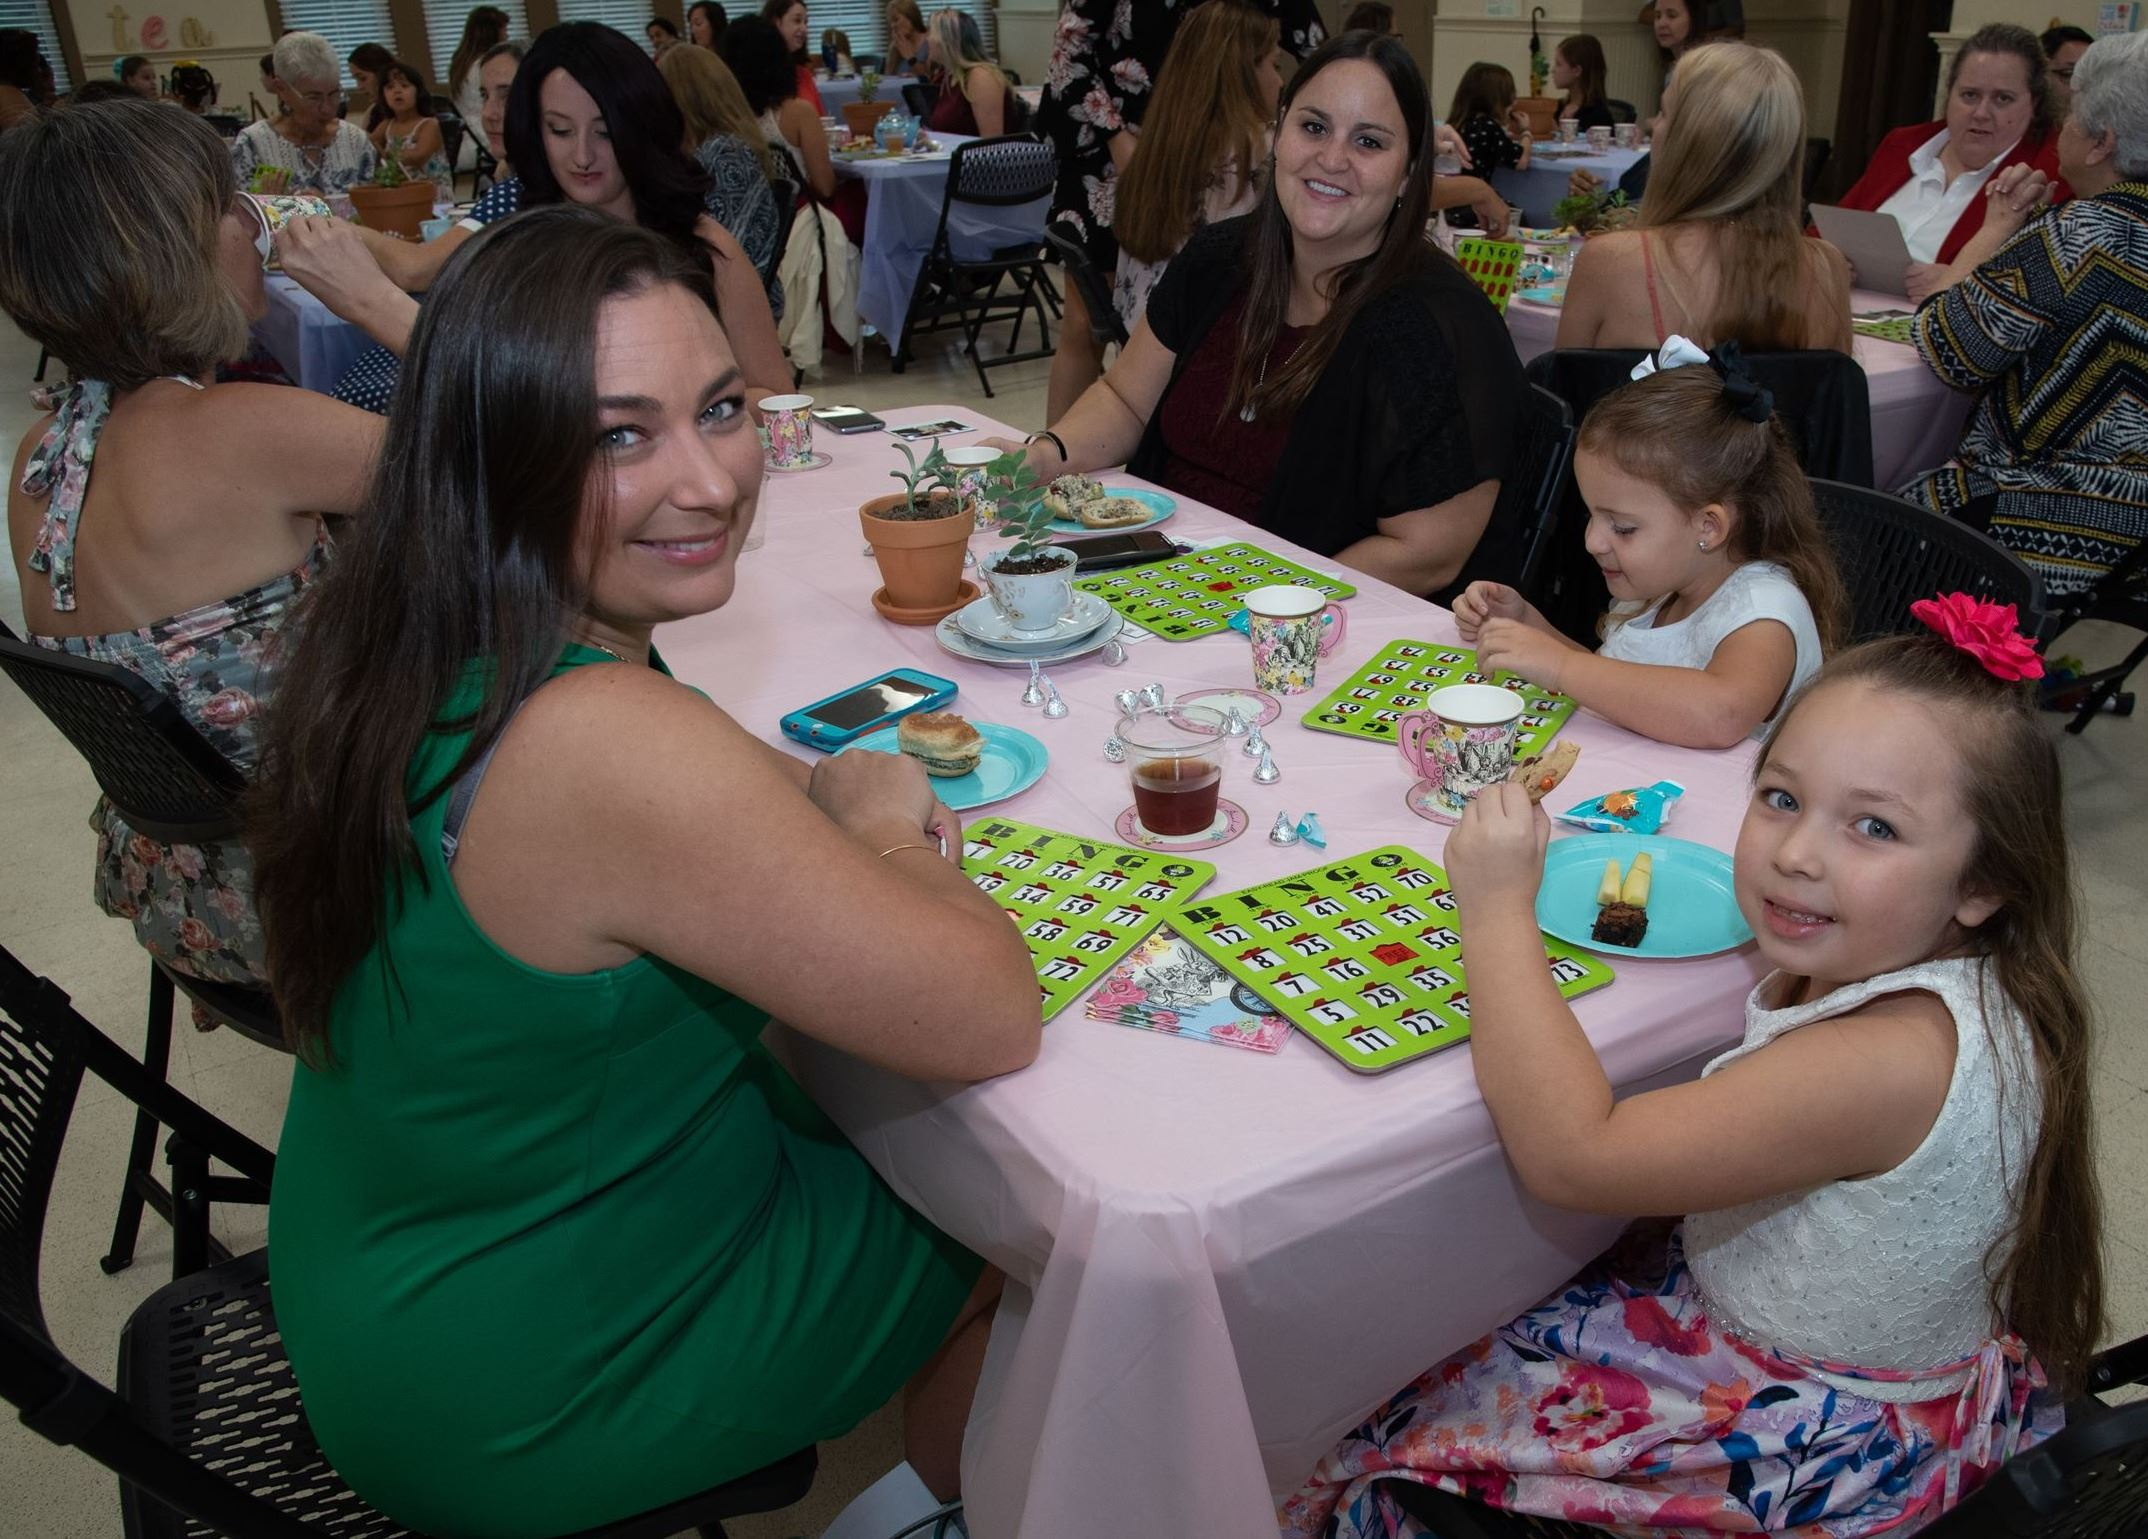 Photo of women around a table with games and refreshments during the 2018 Mother Daughter Tea event